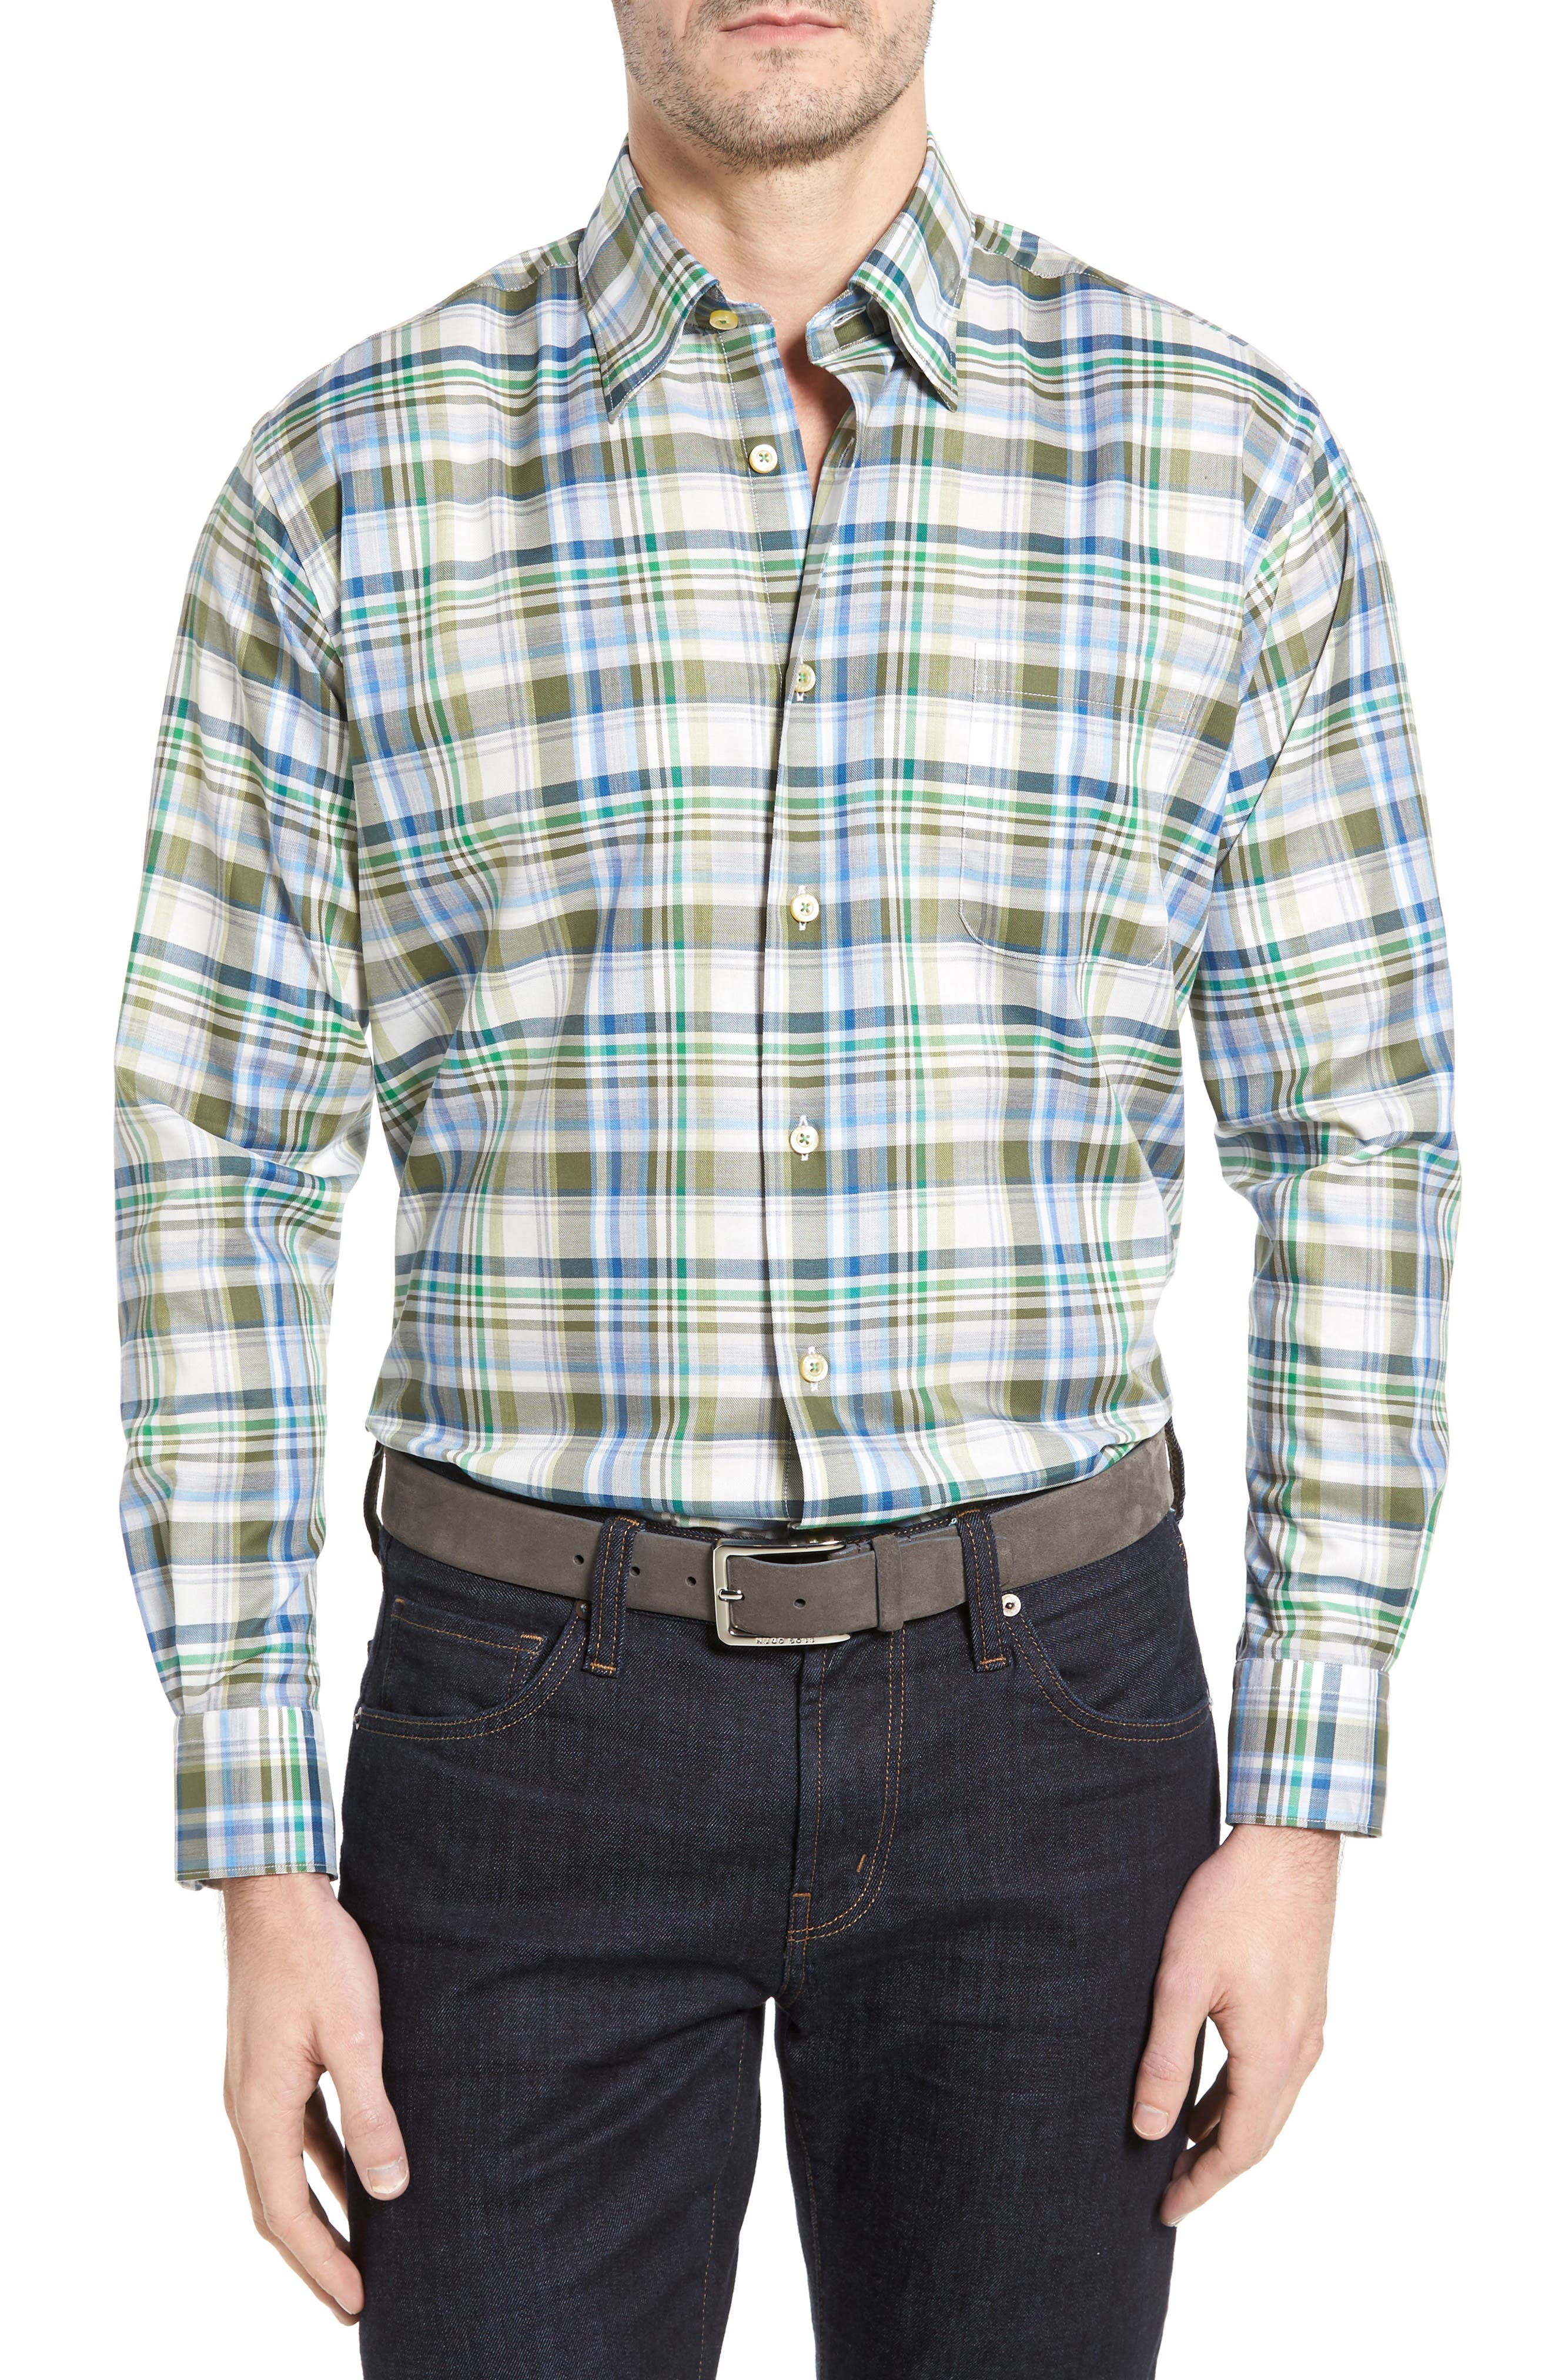 Anderson Classic Fit Plaid Micro Twill Sport Shirt,                             Main thumbnail 1, color,                             Green